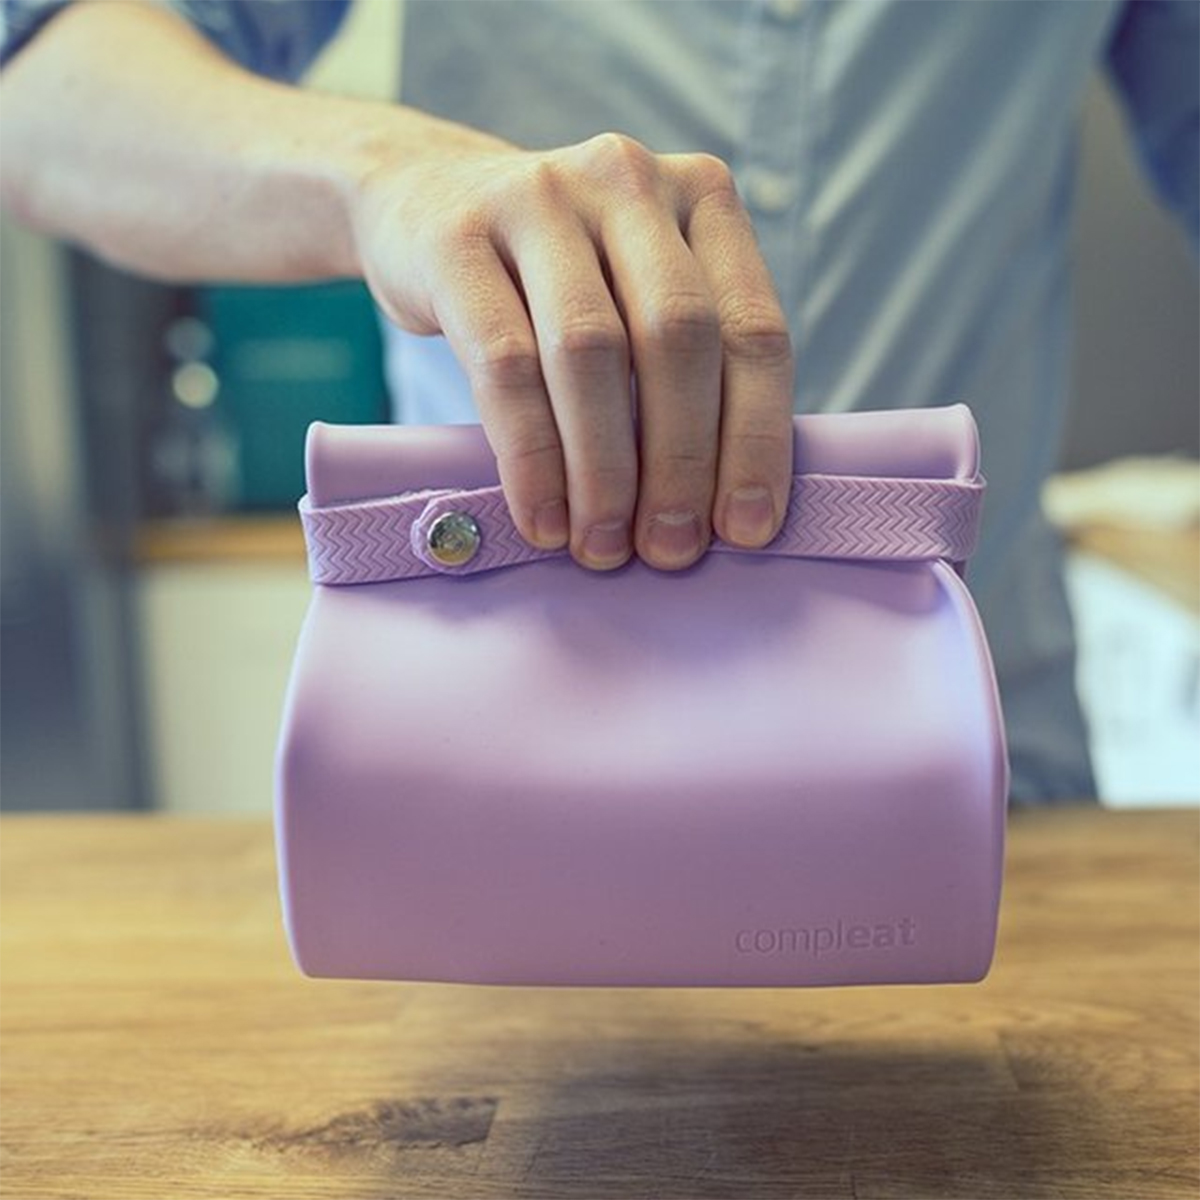 Lunchbox Compleat en silicone